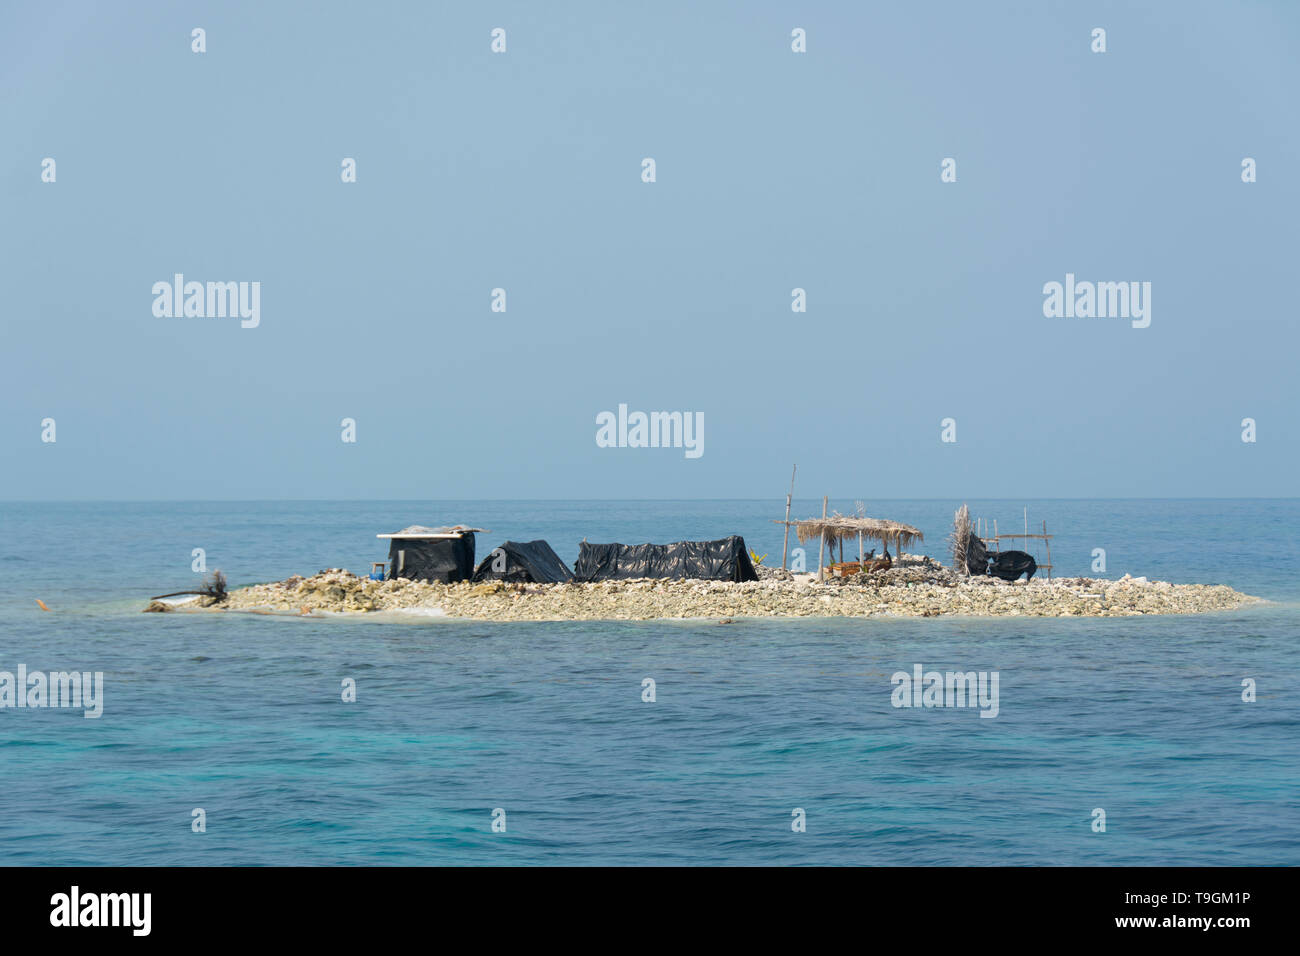 Belizean fishermen's makeshift shelters on tiny island, Belize. - Stock Image